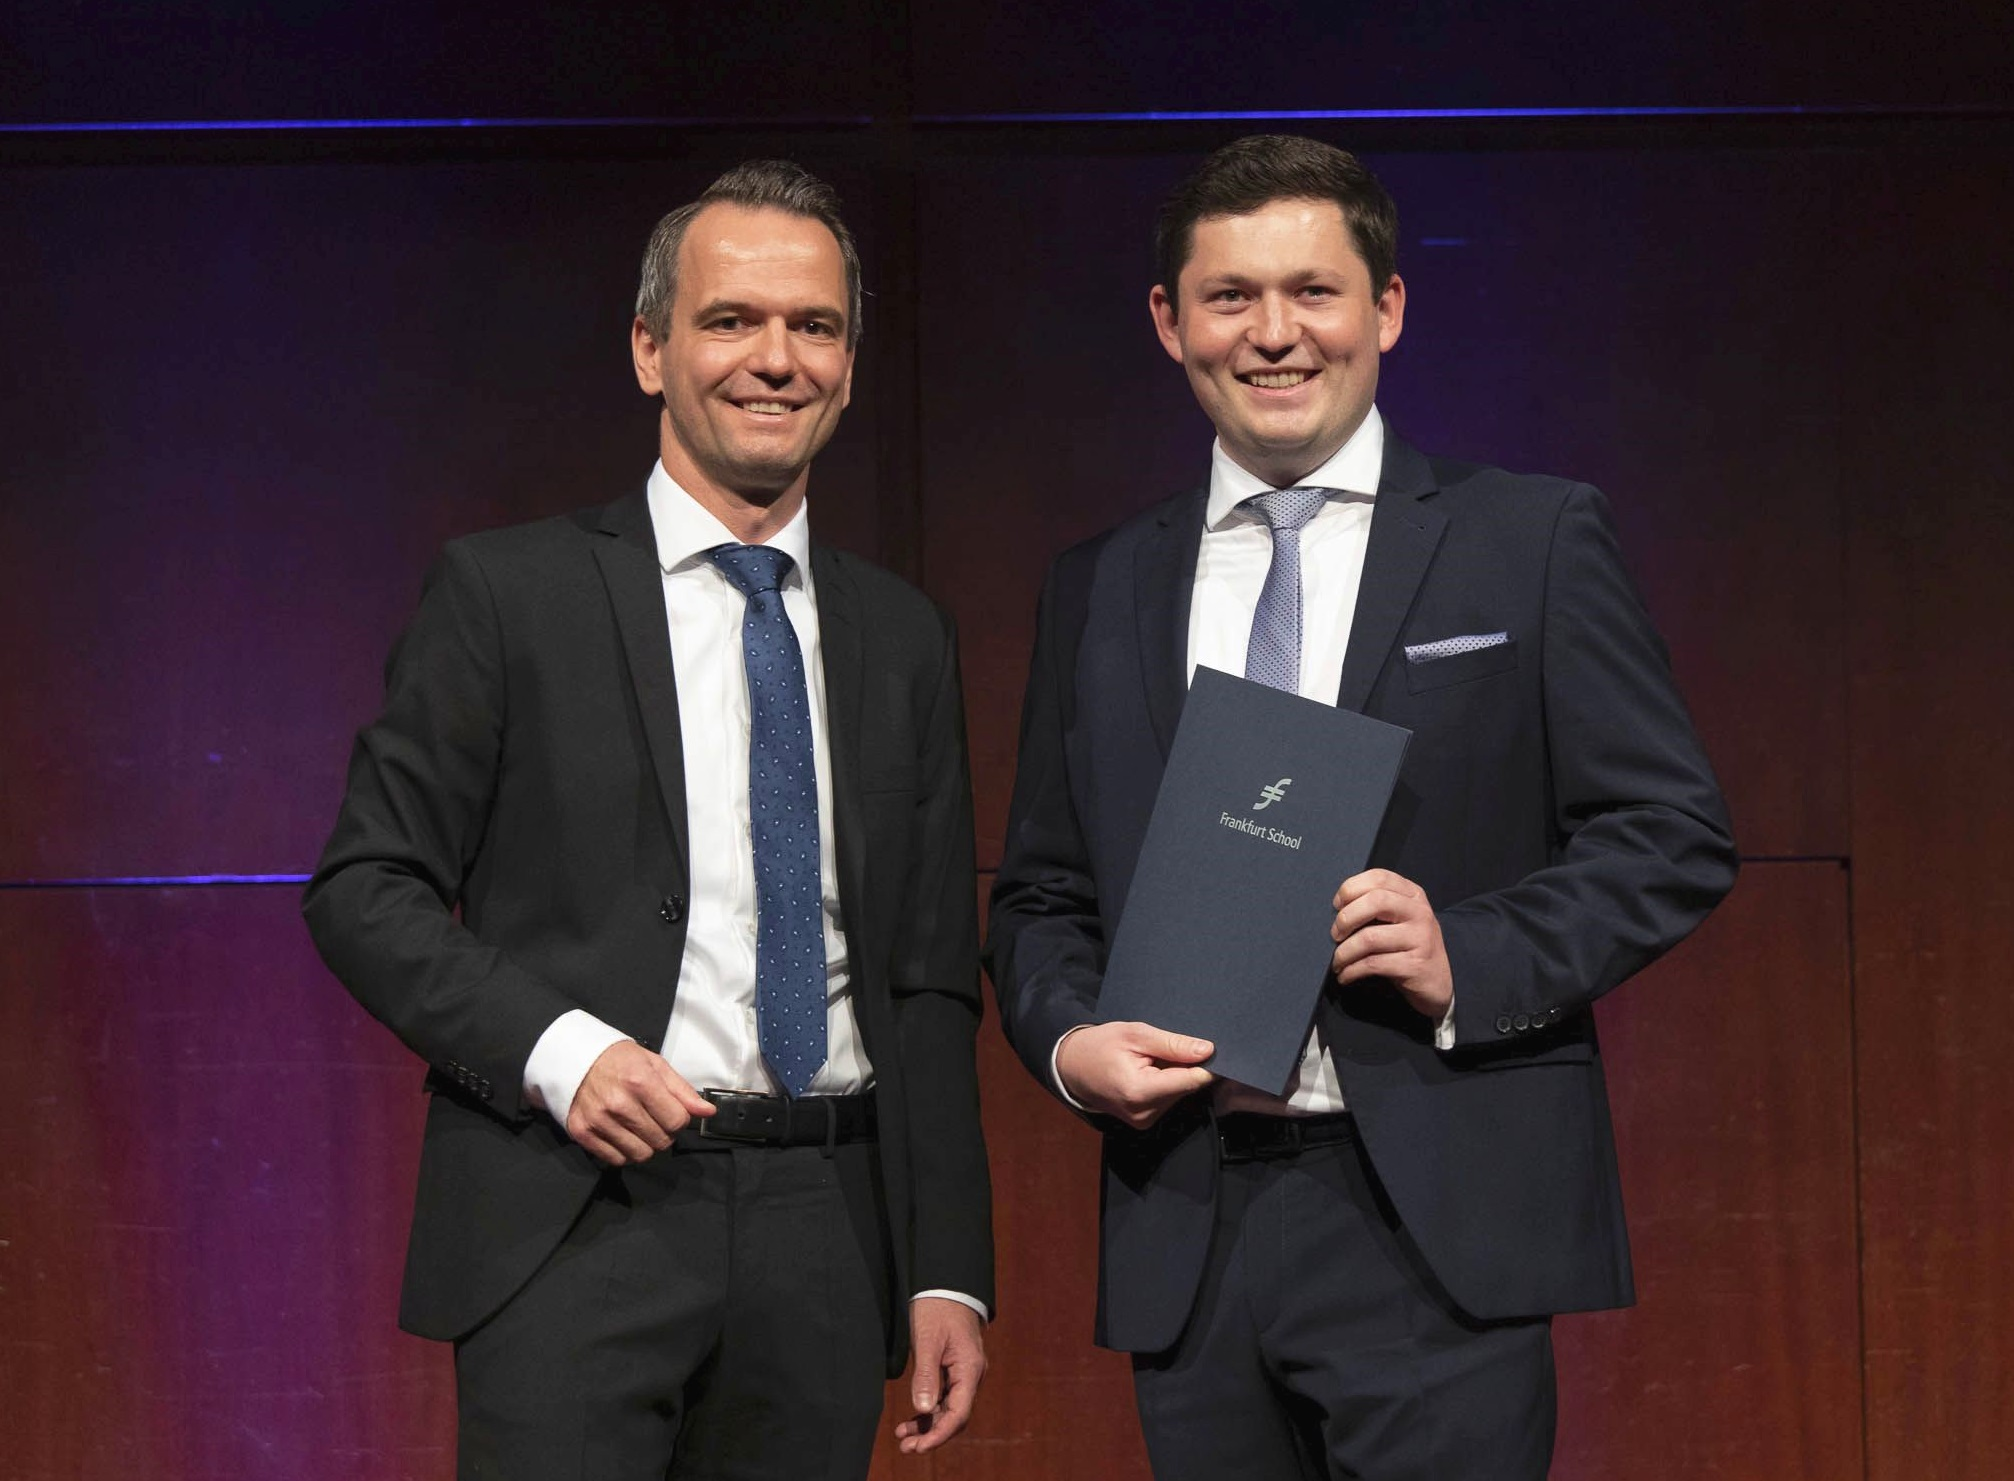 The head of HR at NORMA Group Jan Löffler presented the first-placed graduate Jonathan Hartel with the Manufacturing Management Award